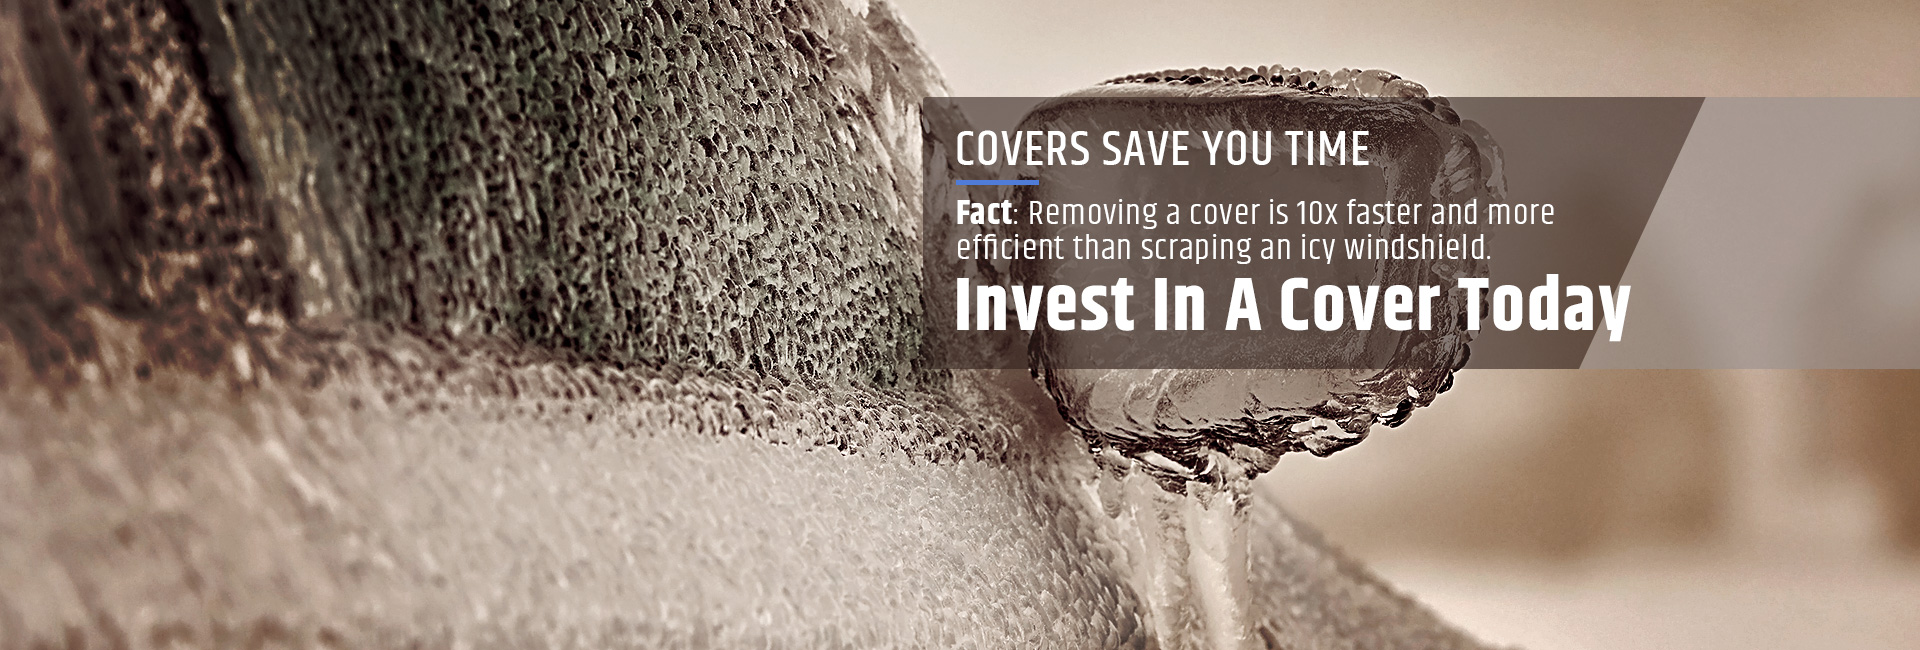 Covers save you time